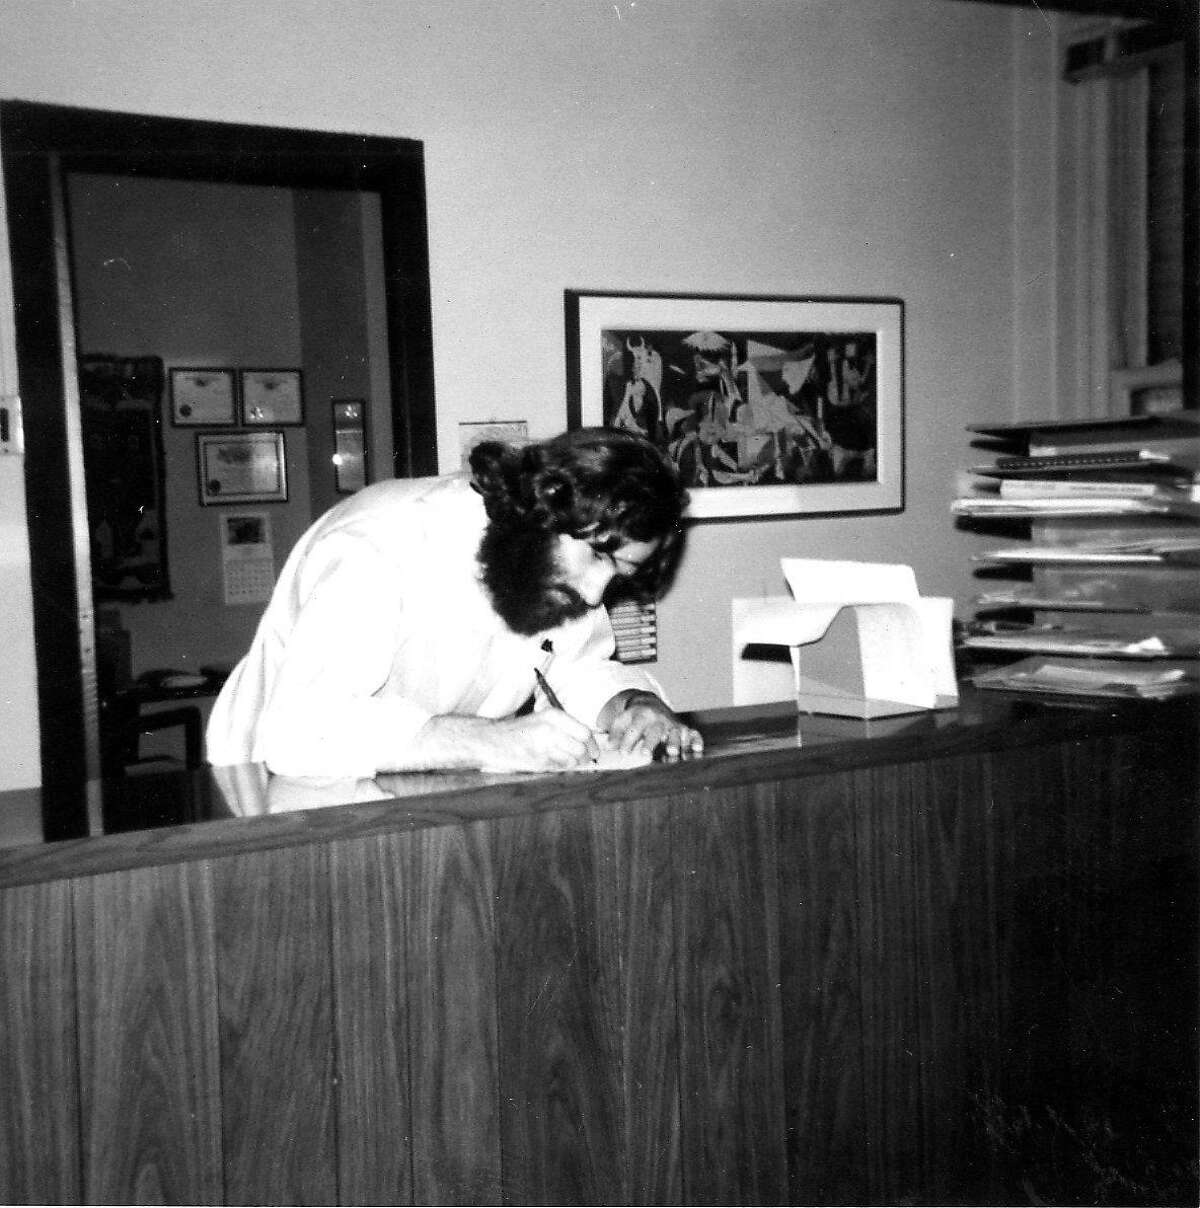 Jerry Garchik, working as a law clerk in the Boston office of the lawyers defending him, 1970 Handout